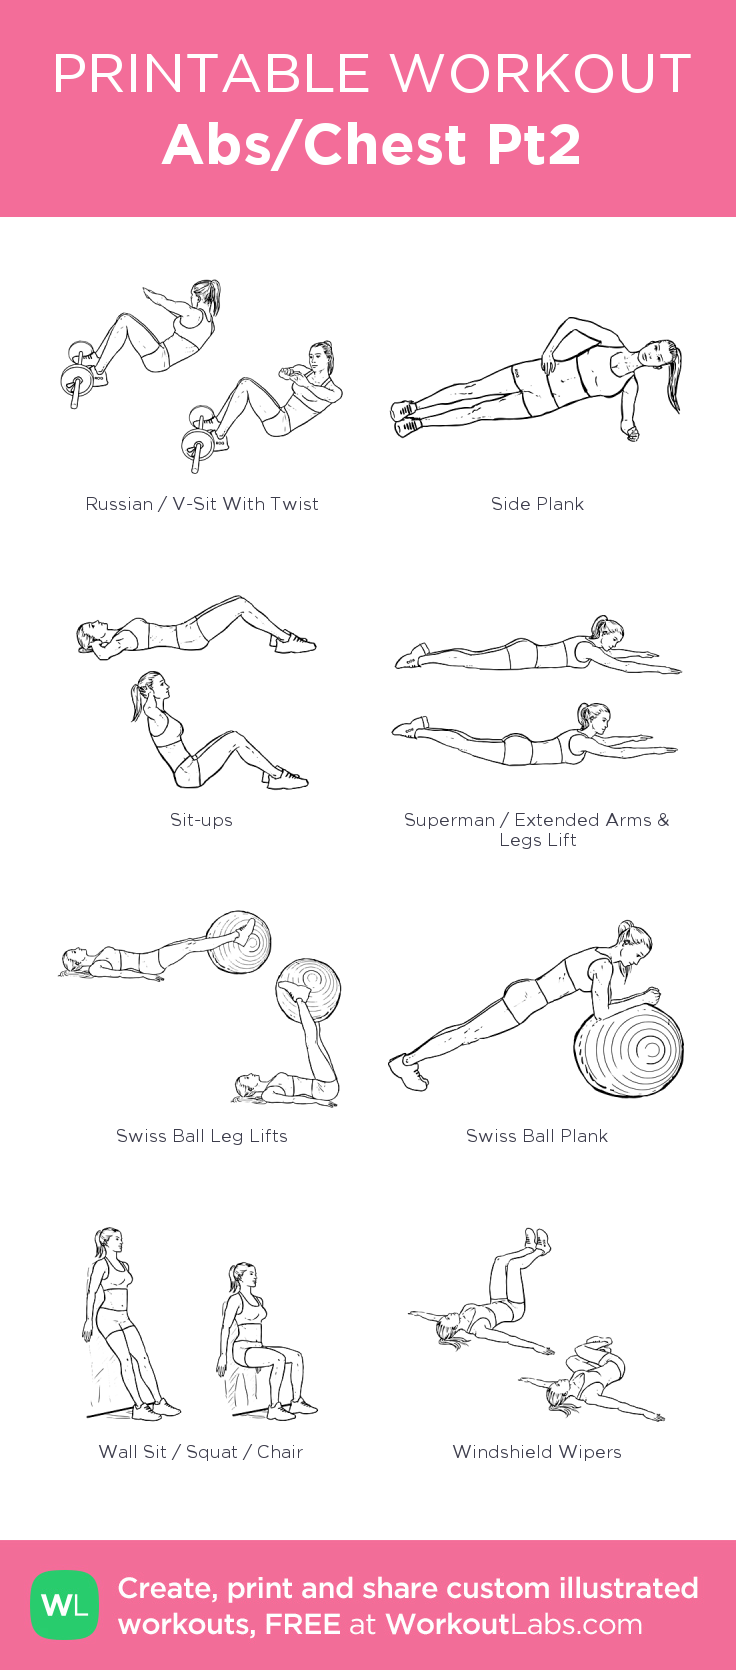 Abs/Chest Pt2 my visual workout created at WorkoutLabs